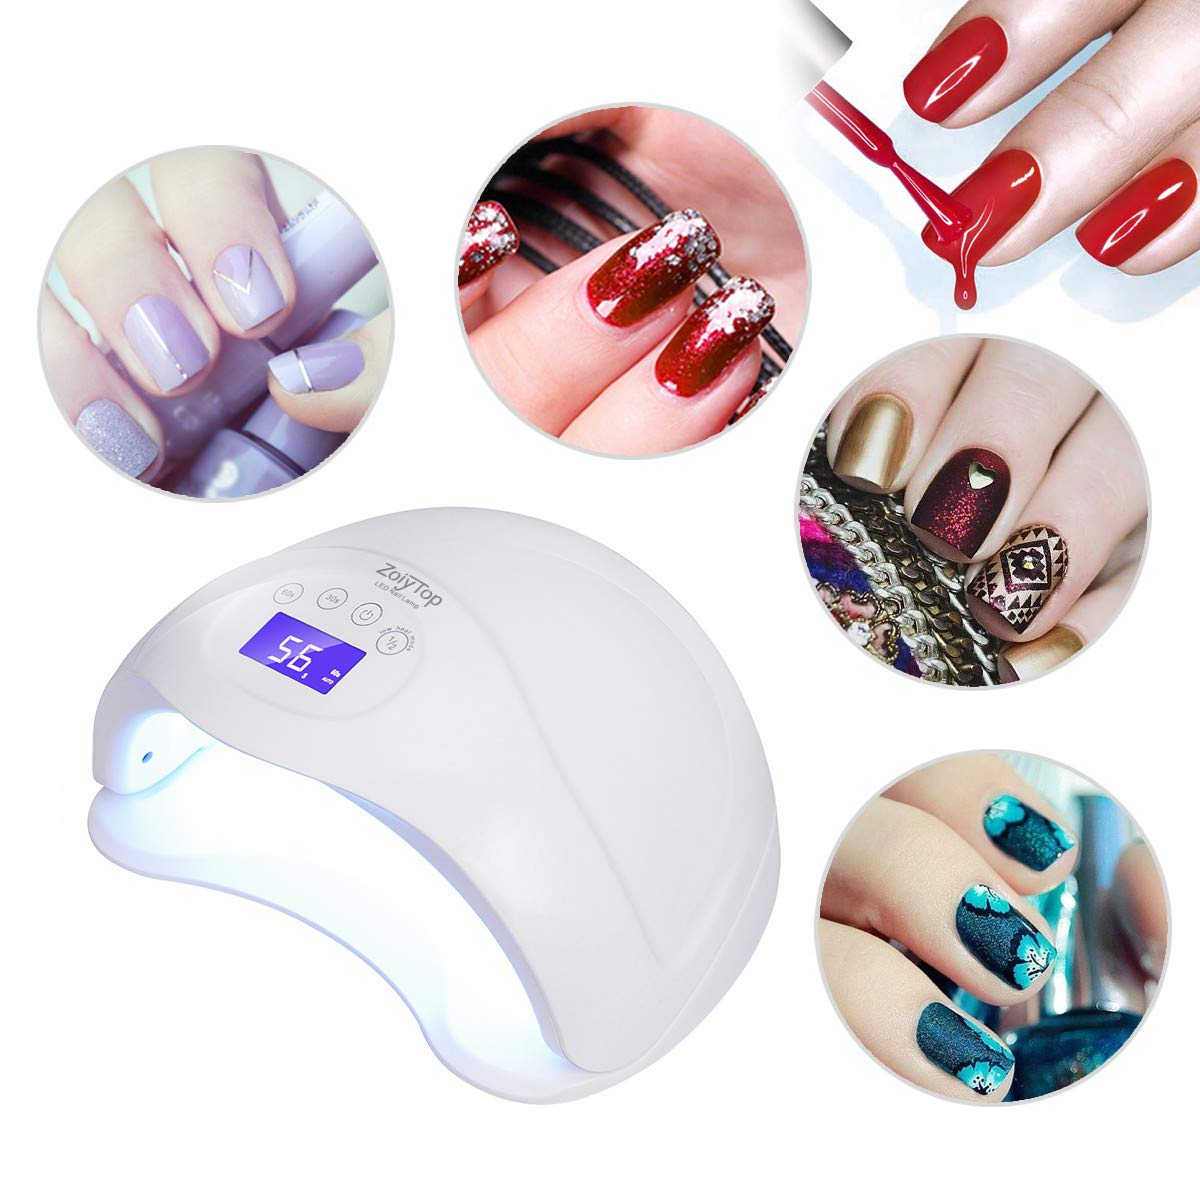 Nail Dryer, ZoiyTop 48W LED/UV Nail Lamp for Gels Nail Polish with 3 Timer Setting +low power consumption mode